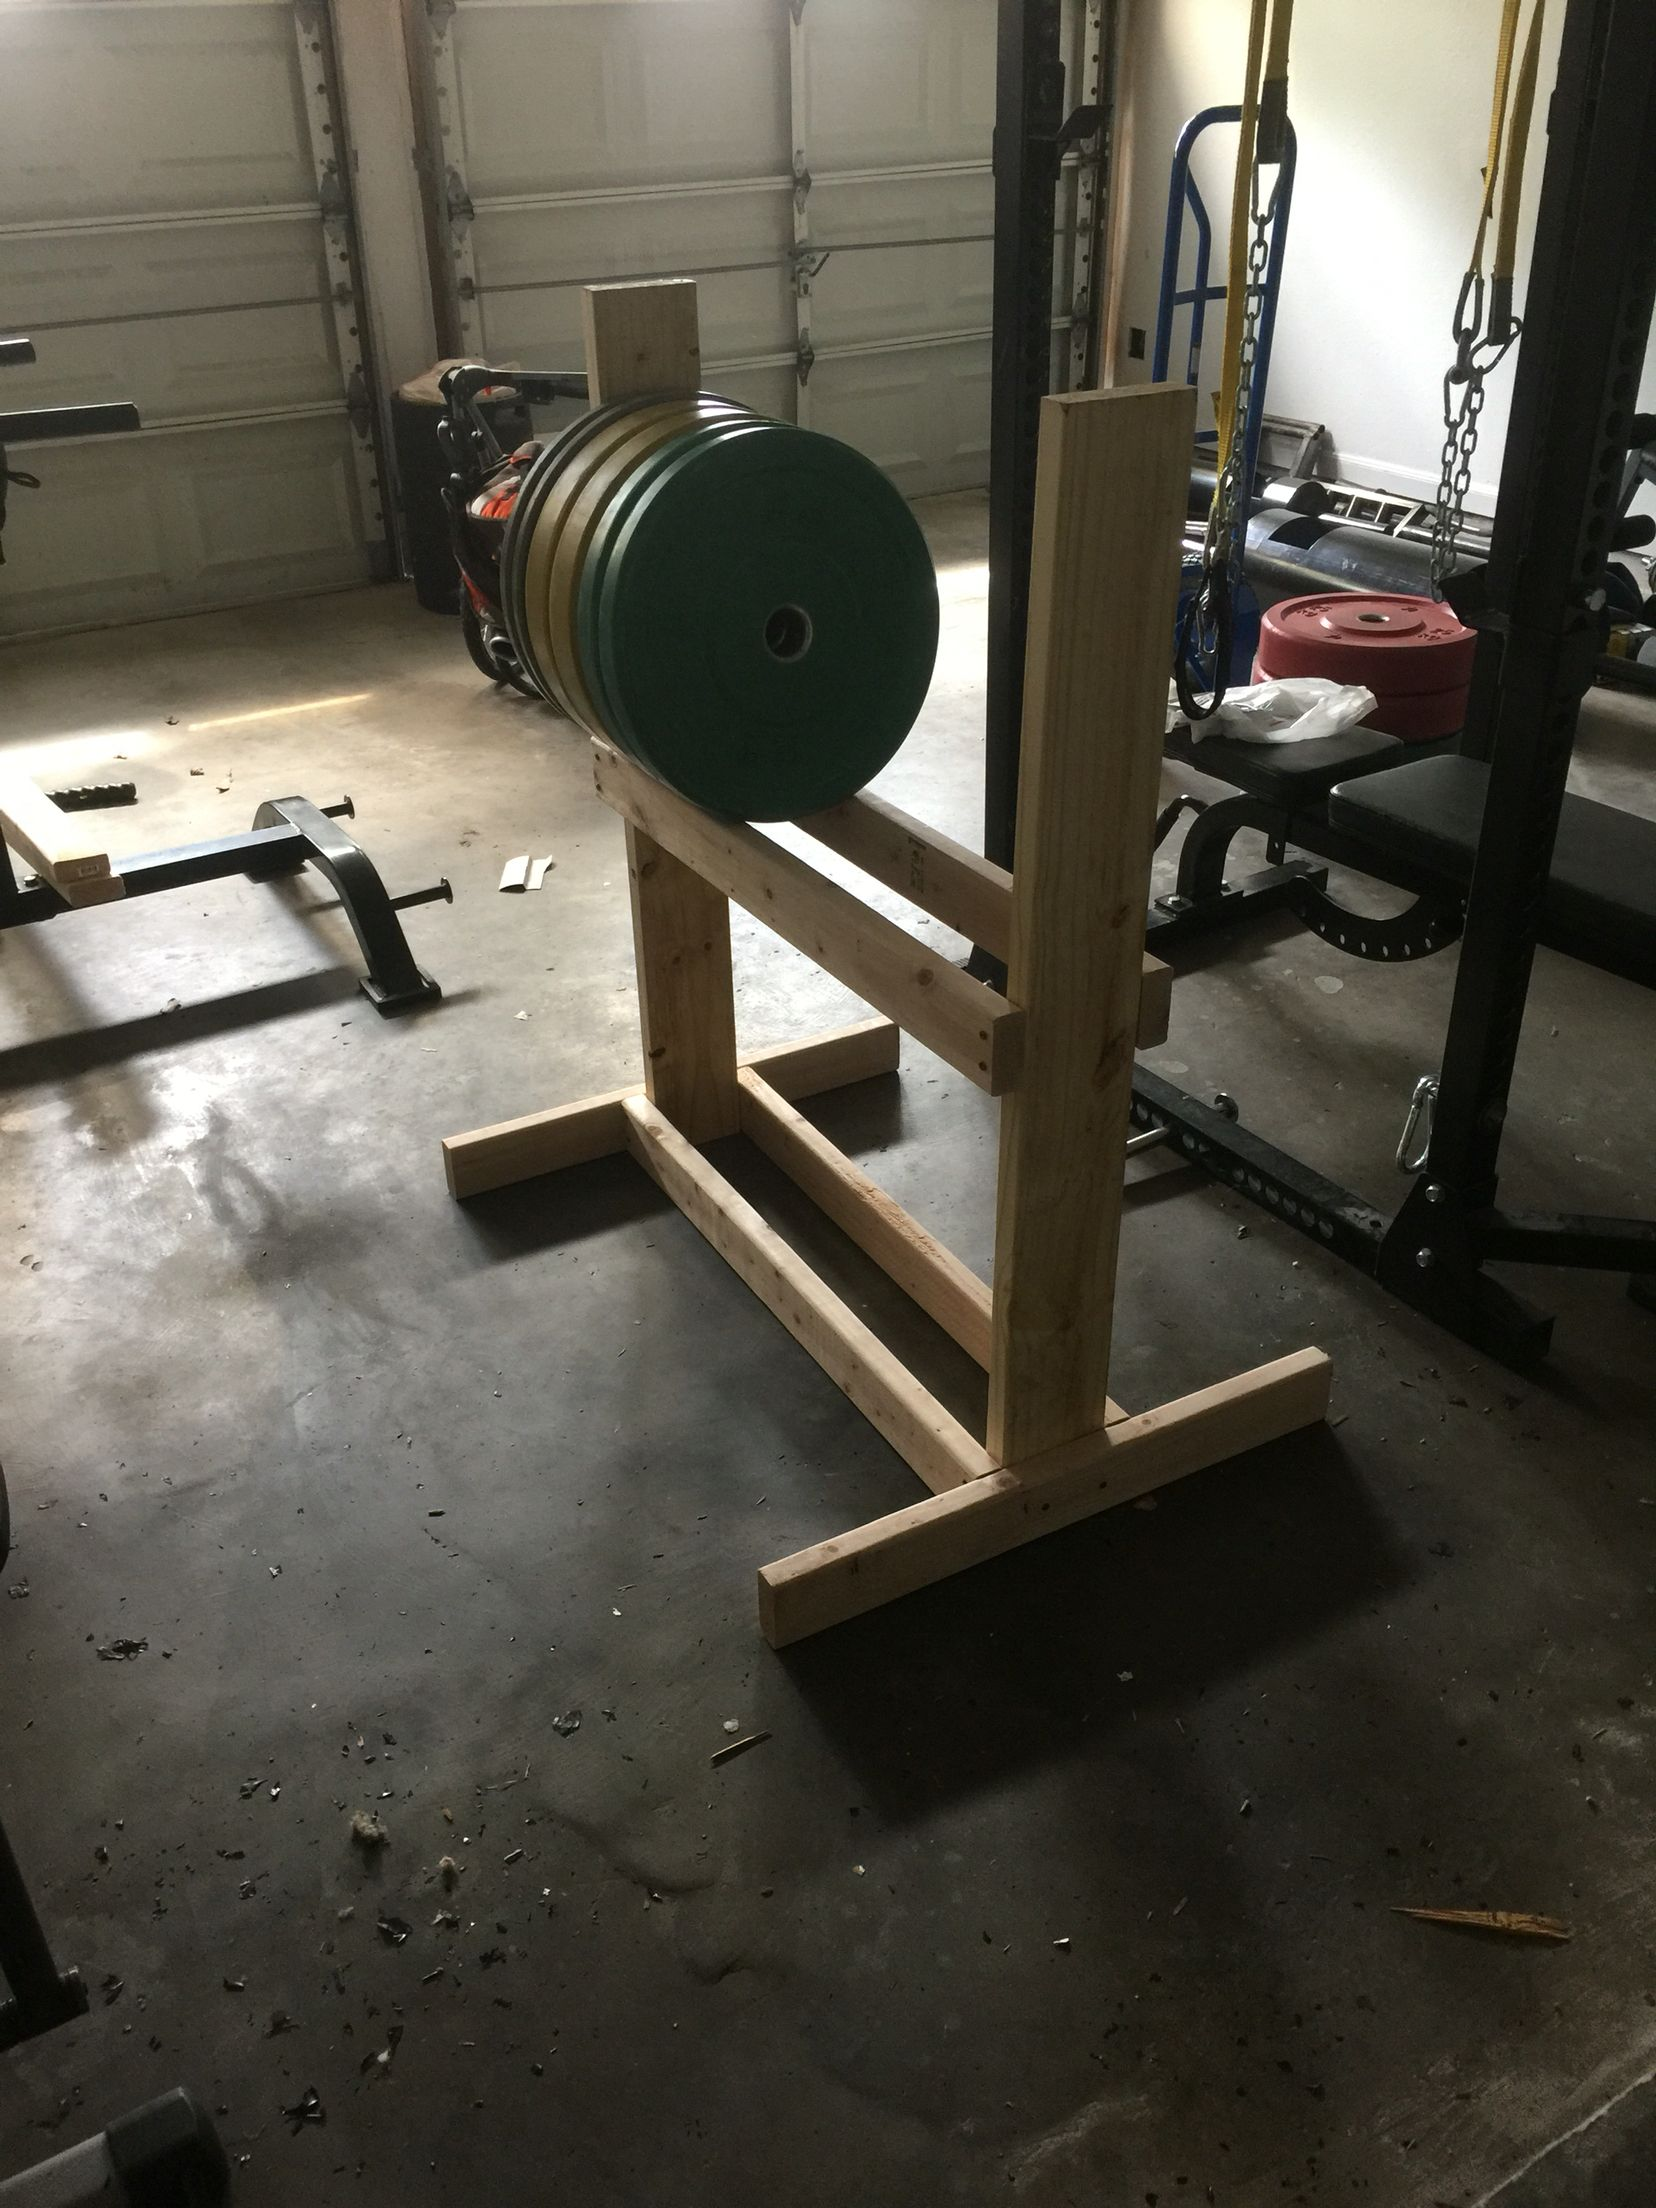 Diy plate storage plan to add a shelf on top for dumbells war